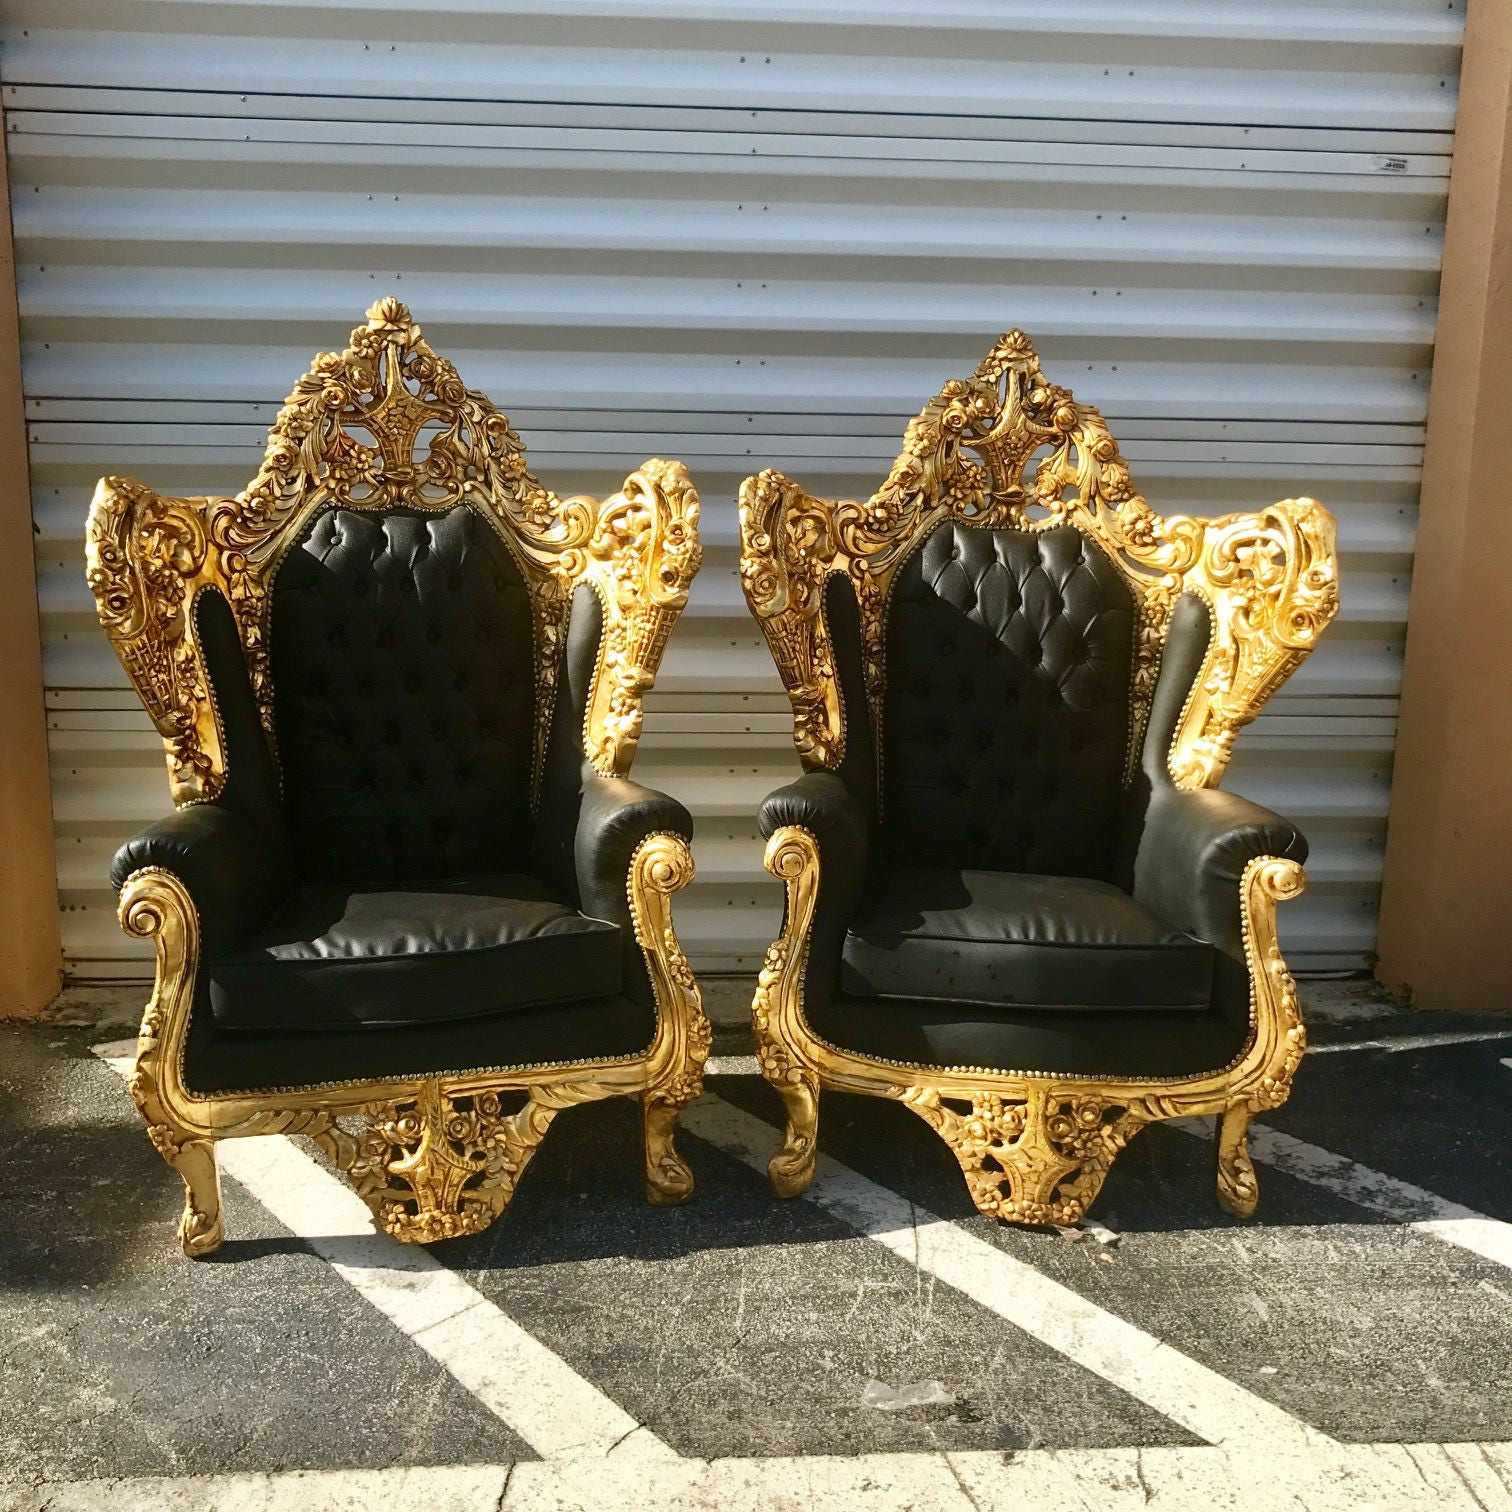 gallery photo gallery photo - Rococo Throne Antique Furniture Black Leather Tufted Settee Gold